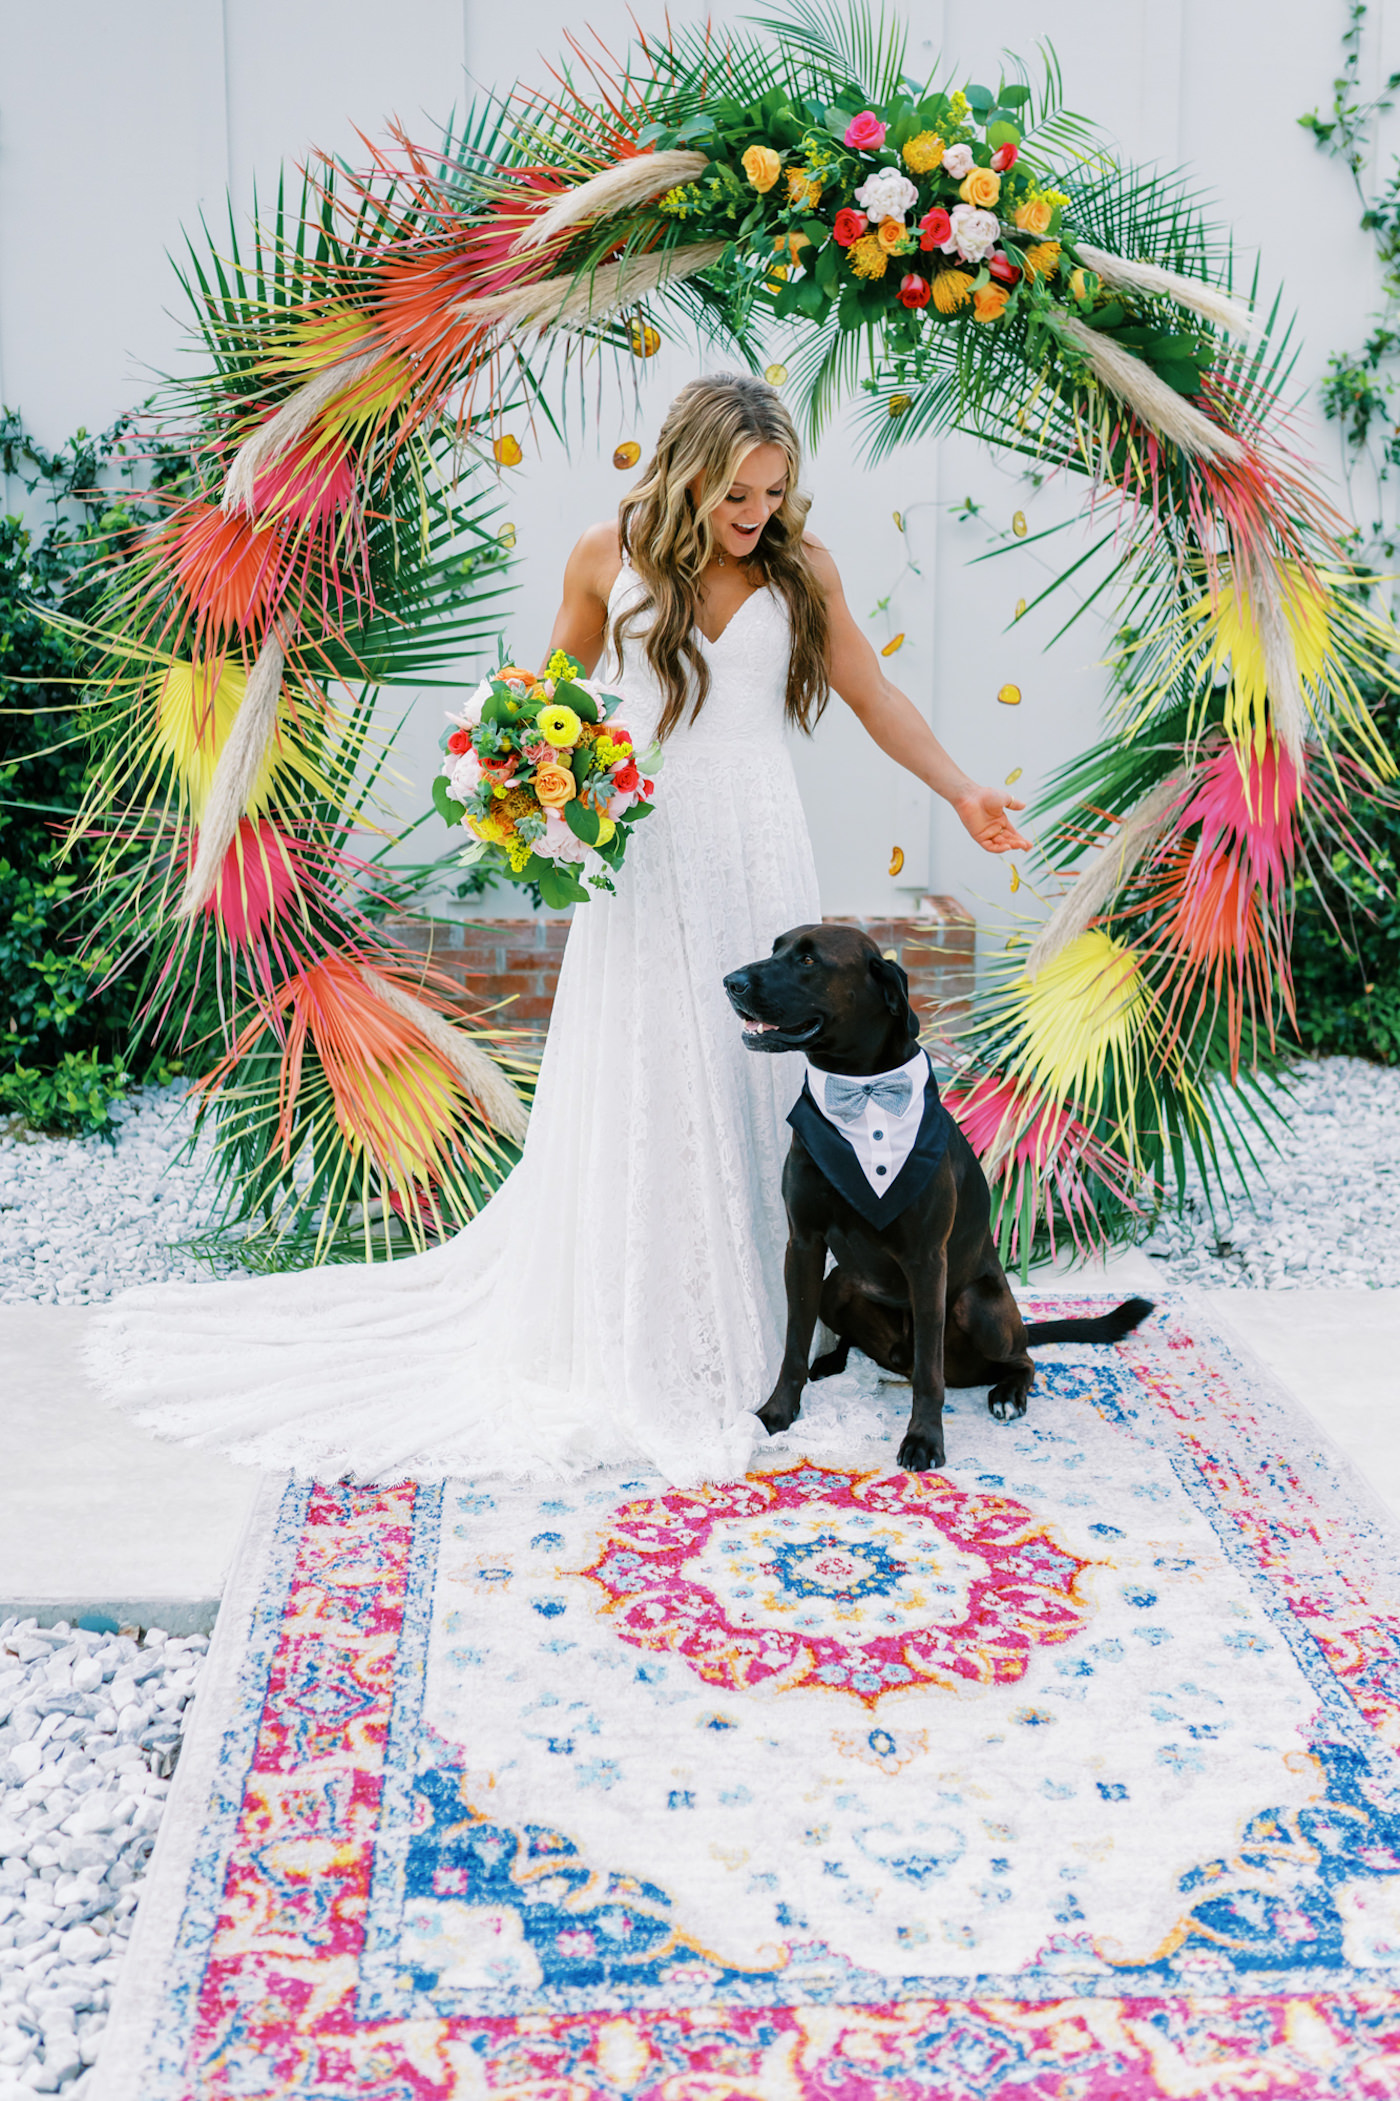 Tropical Florida Citrus Wedding Inspiration | Orange and Yellow Painted Palm Frond Leaf Round Moon Arch Ceremony Backdrop with Pampas Grass and Hanging Orange Slices | Bright Colorful Floral Arrangement with Orange and Pink Roses and Yellow Pincushion Protea | Ceremony Area Rug | Wedding Dog of Honor with Bow Tie Collar